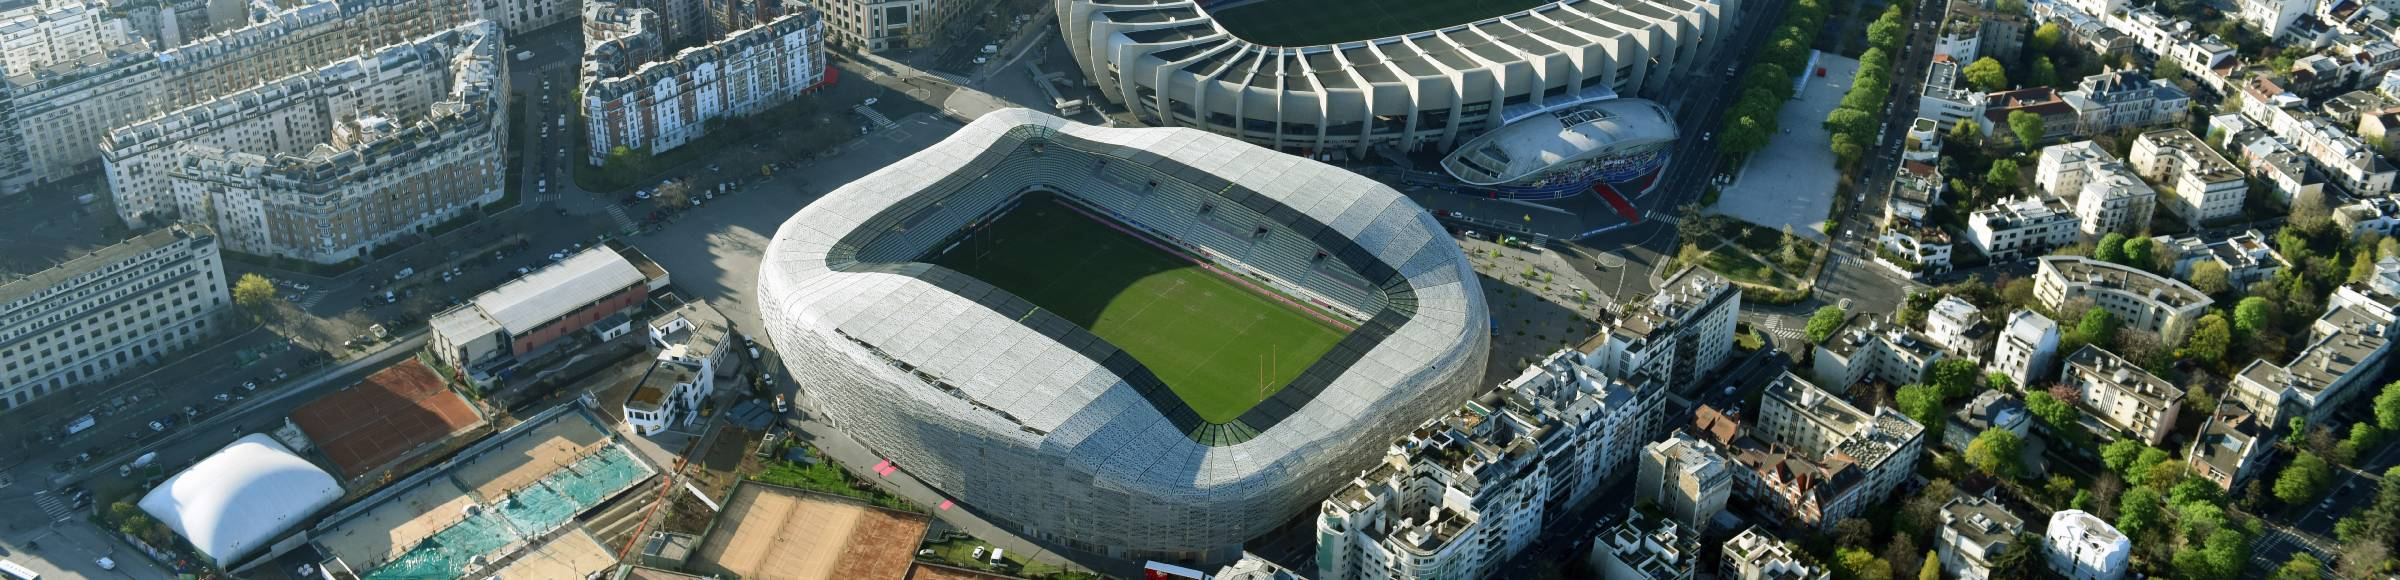 Sports facility grounds of the Arena stadium Stade Jean Bouin on Avenue du General Sarrail in Paris in Ile-de-France, France